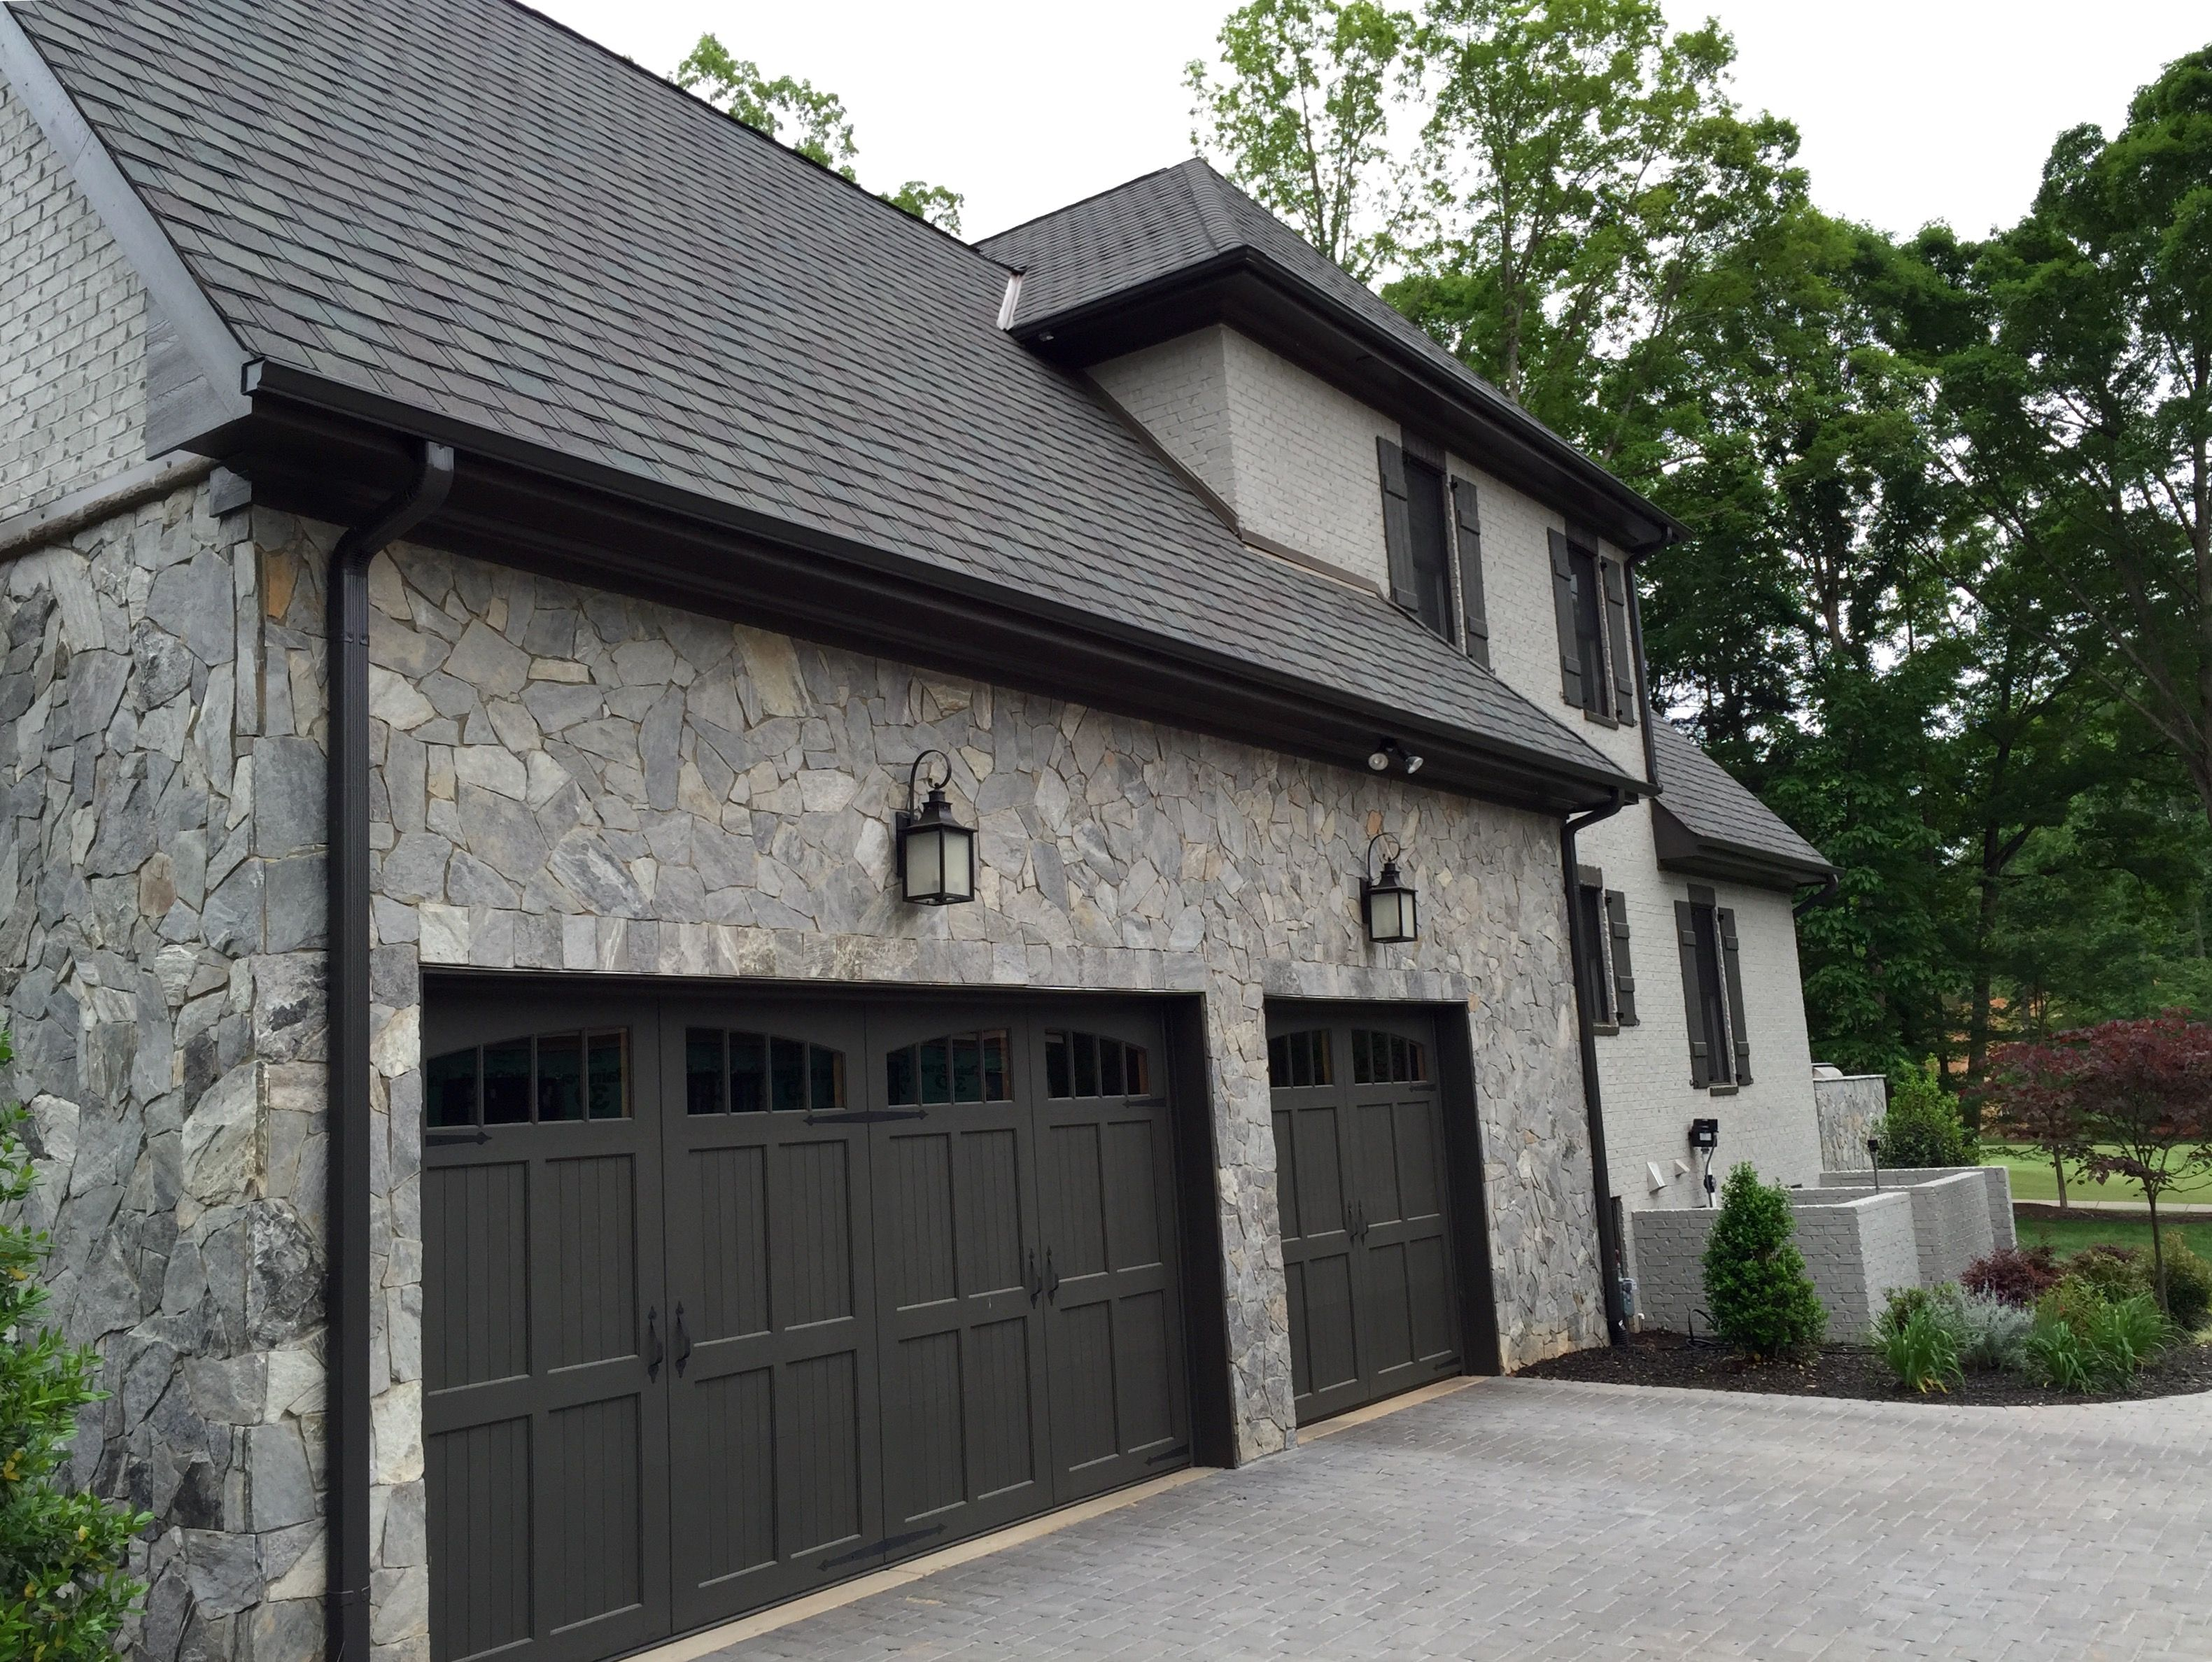 Arh plan asheville 1131f exterior 42 stone dove gray for Black roof house